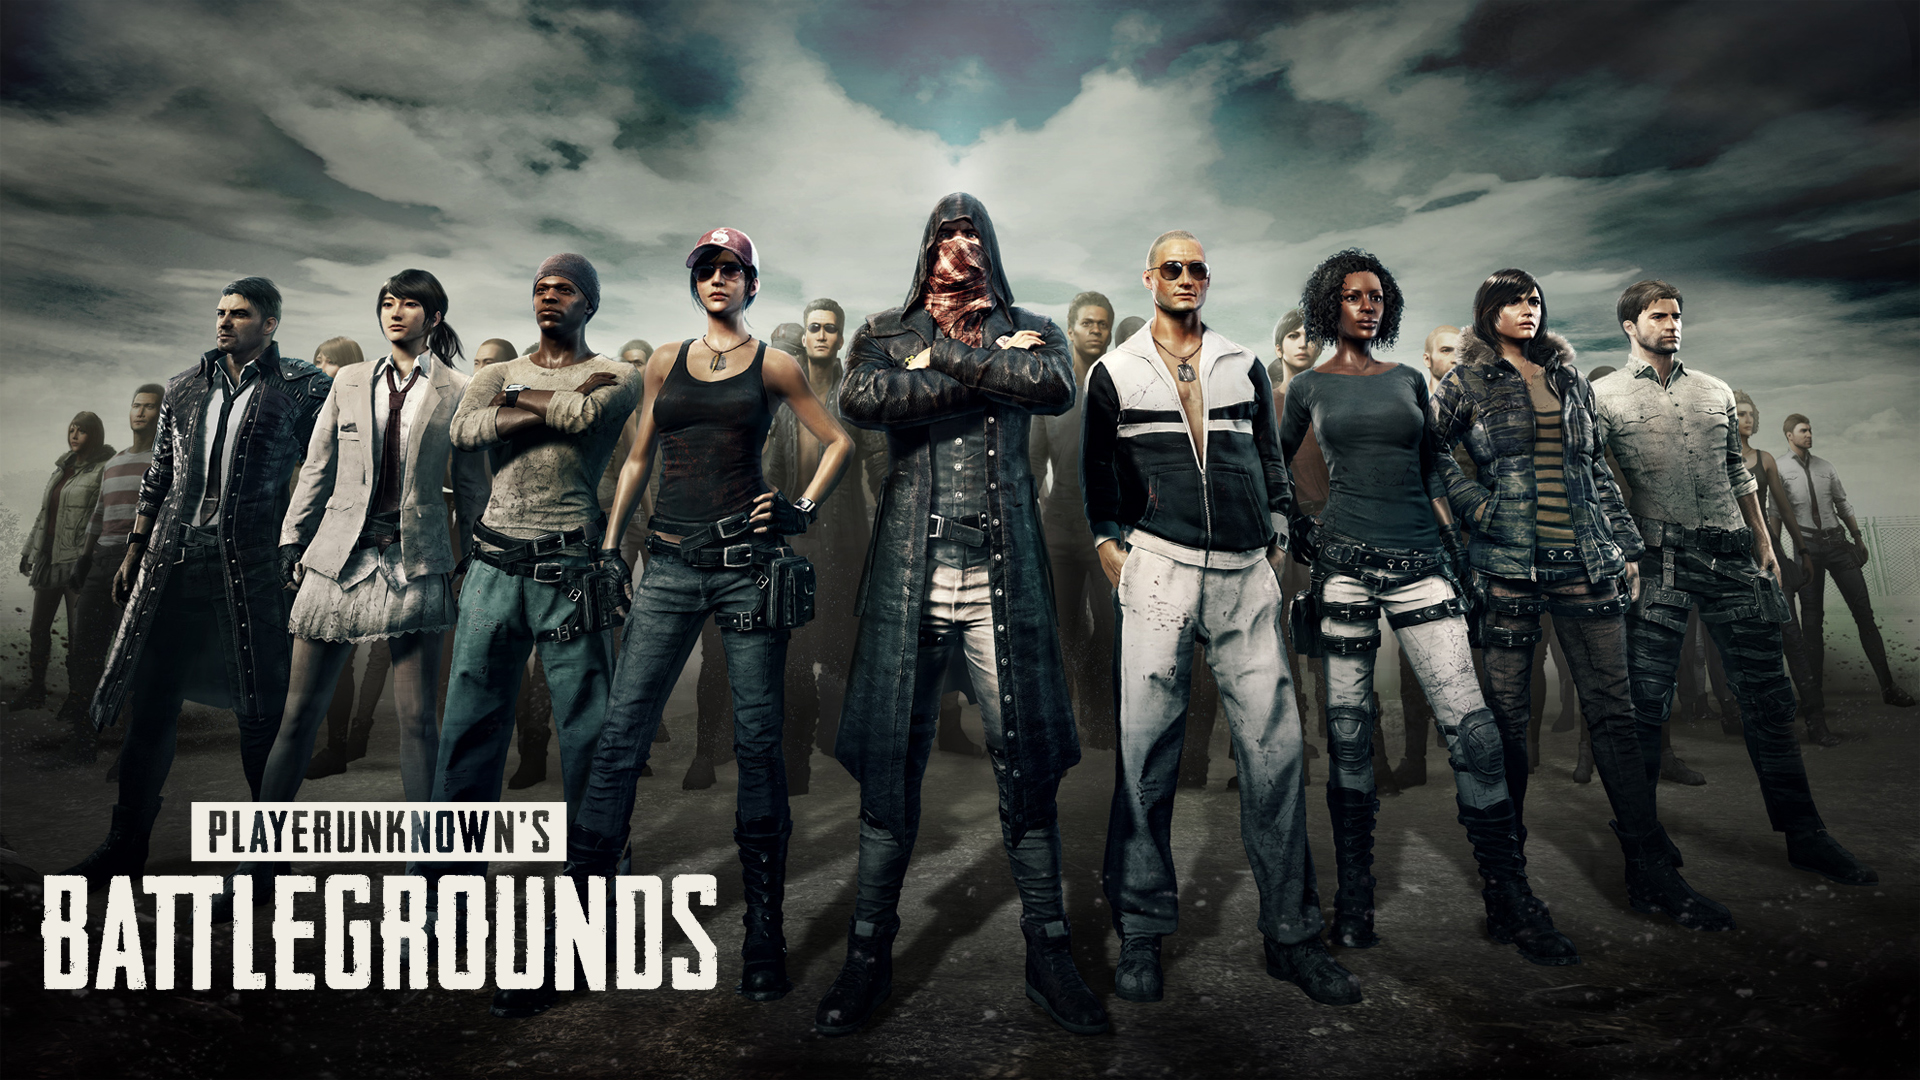 16 Luxury Pubg Wallpaper Iphone 6: Playerunknown's Battlegrounds Now Available For Pre-Order